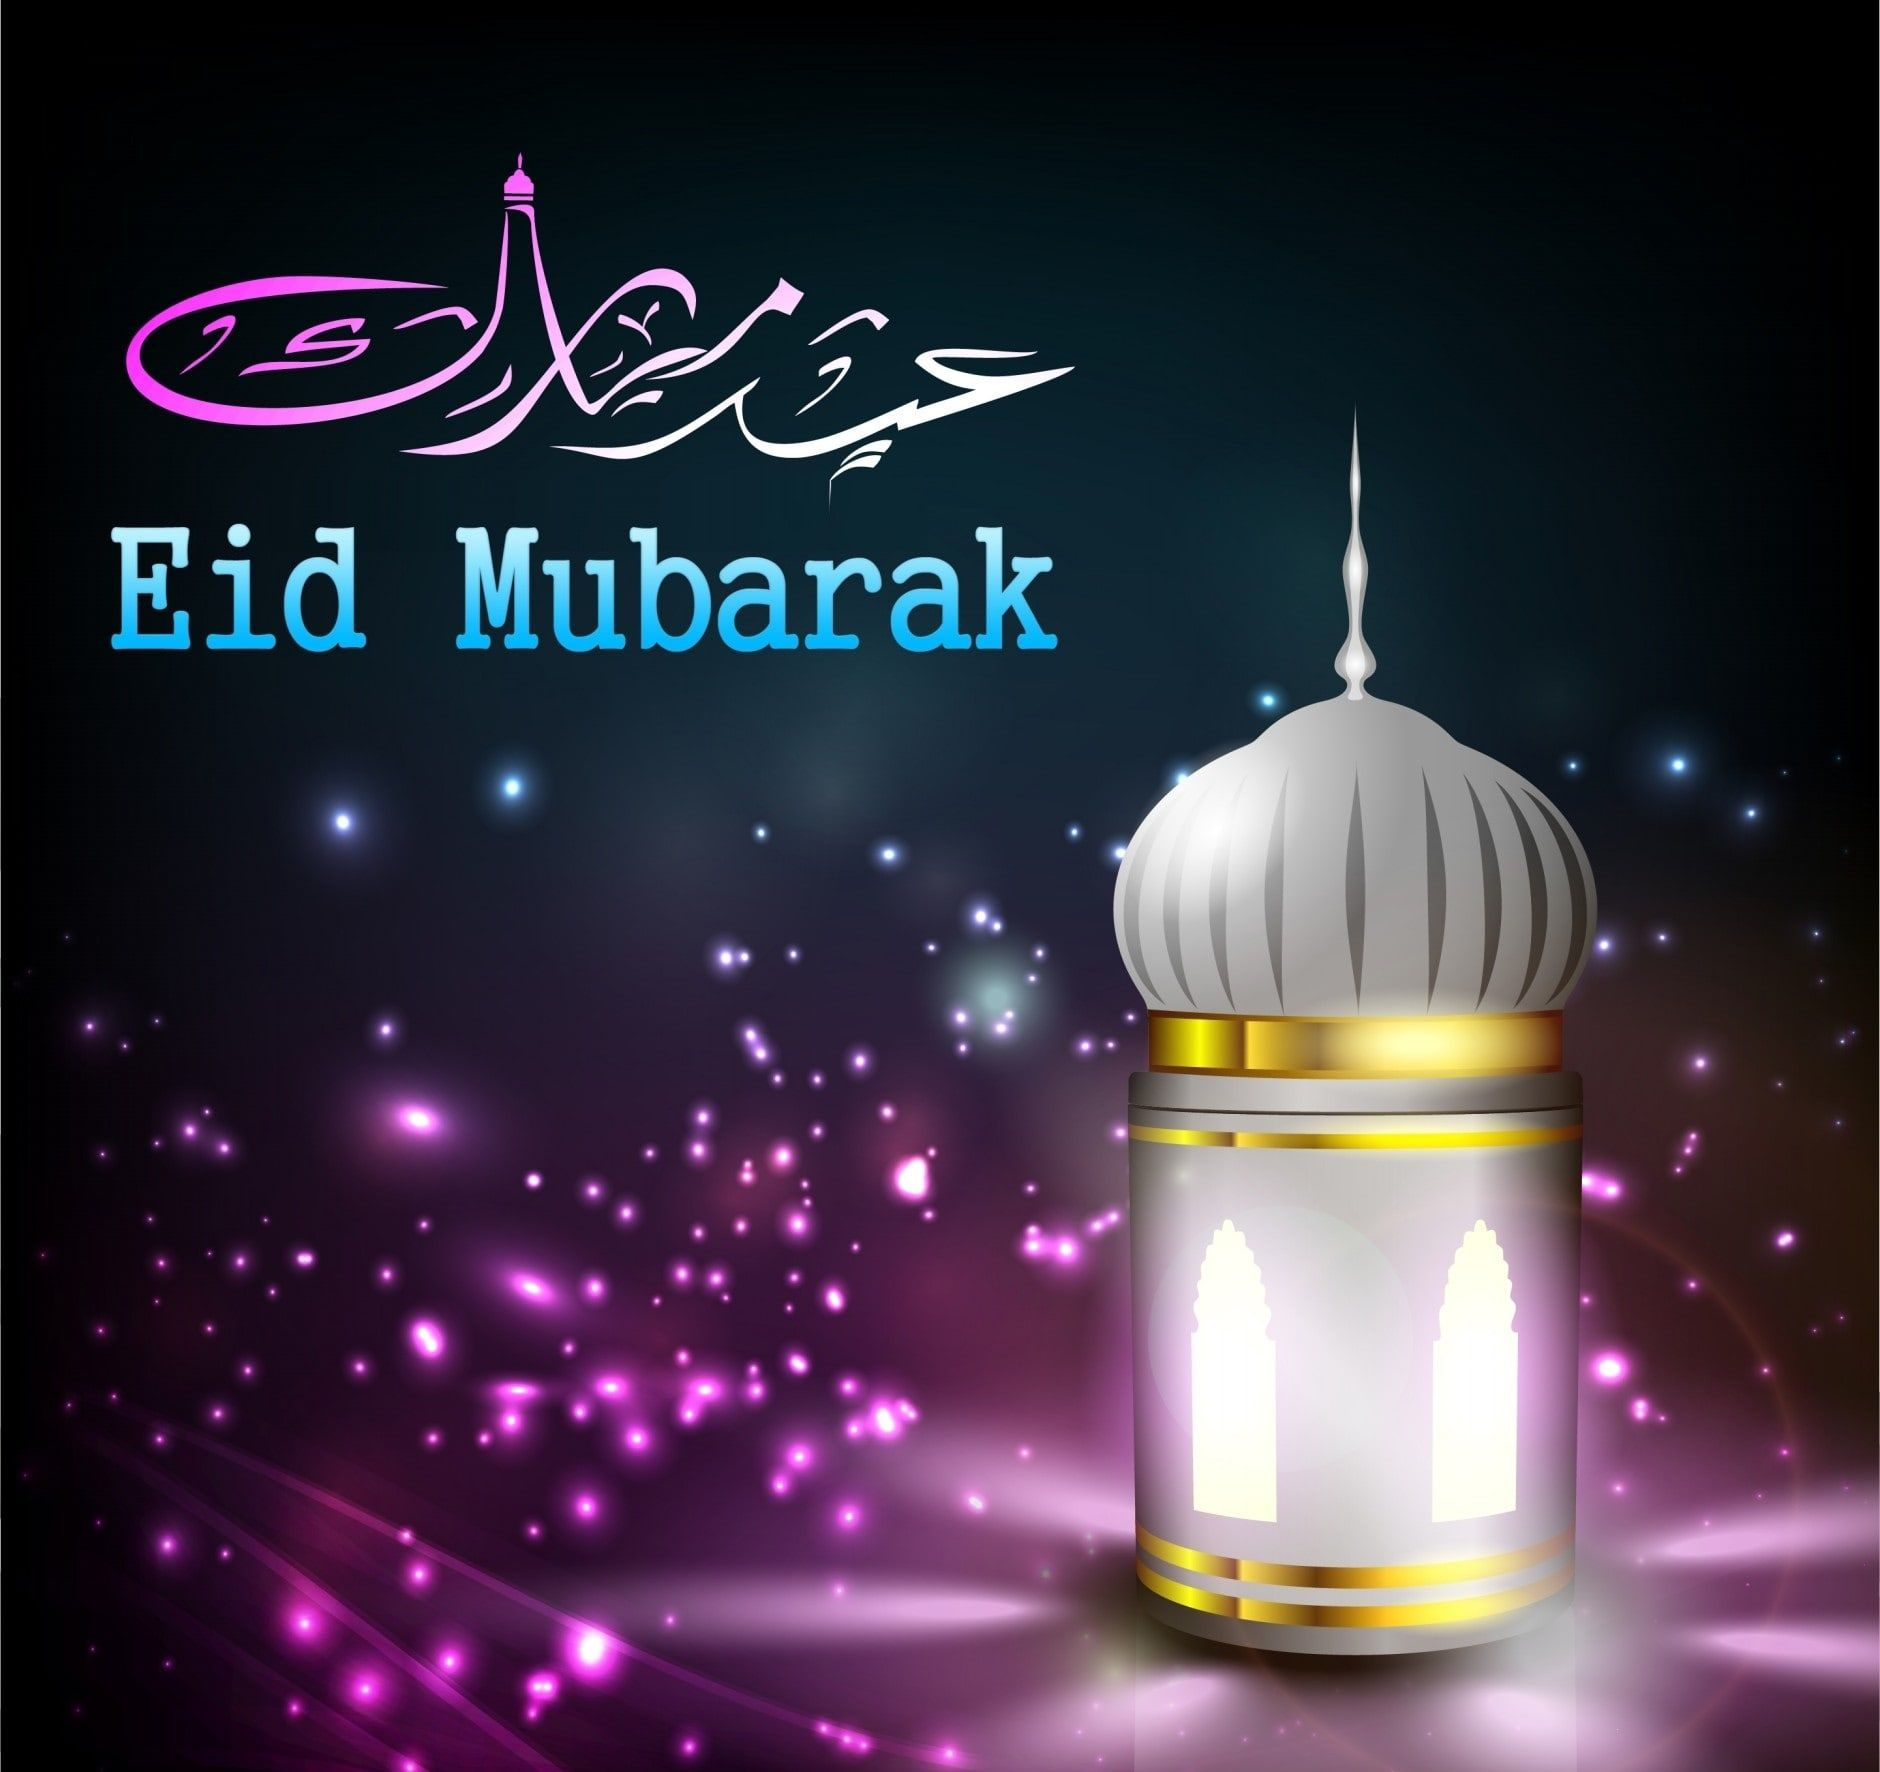 Eid Mubarak Wallpaper 3d Eid Mubarak Wallpaper Eid Wallpaper